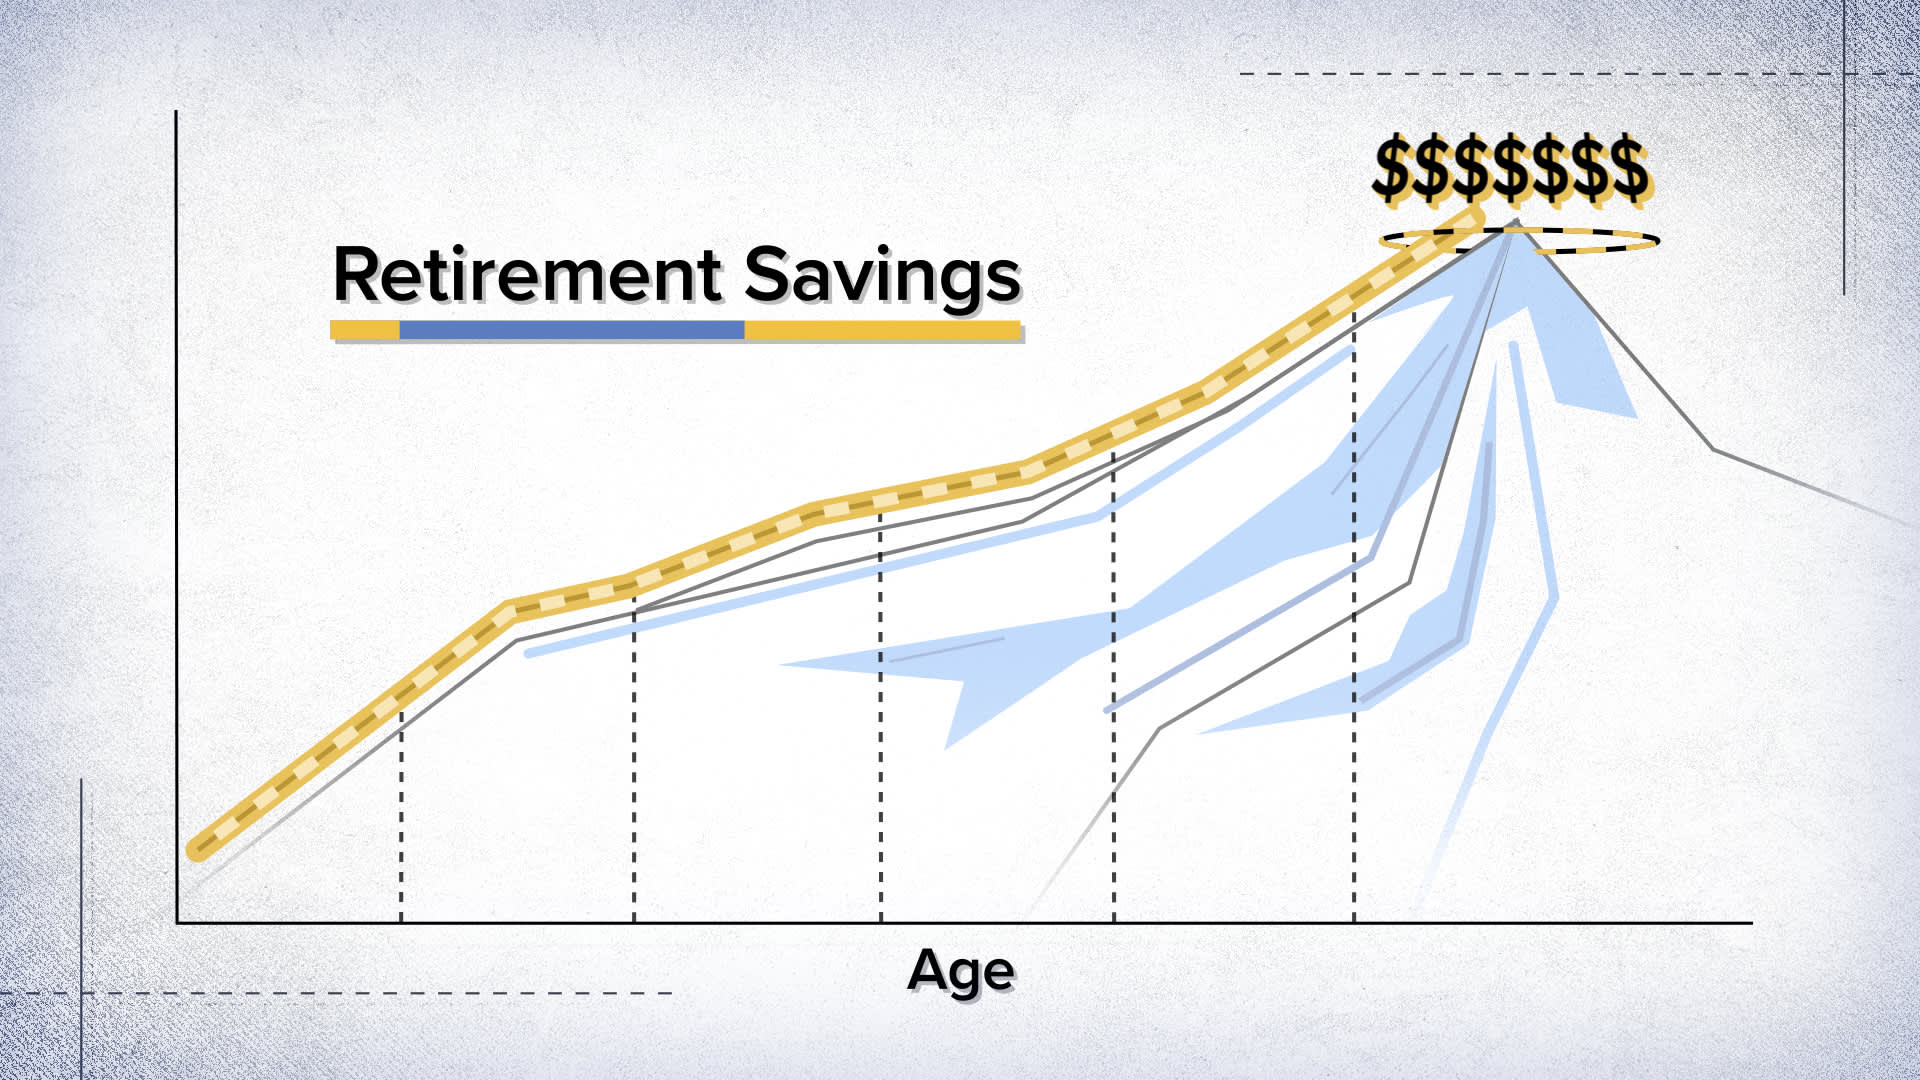 What you need to save monthly to retire with $1 million to $3 million, broken down by age